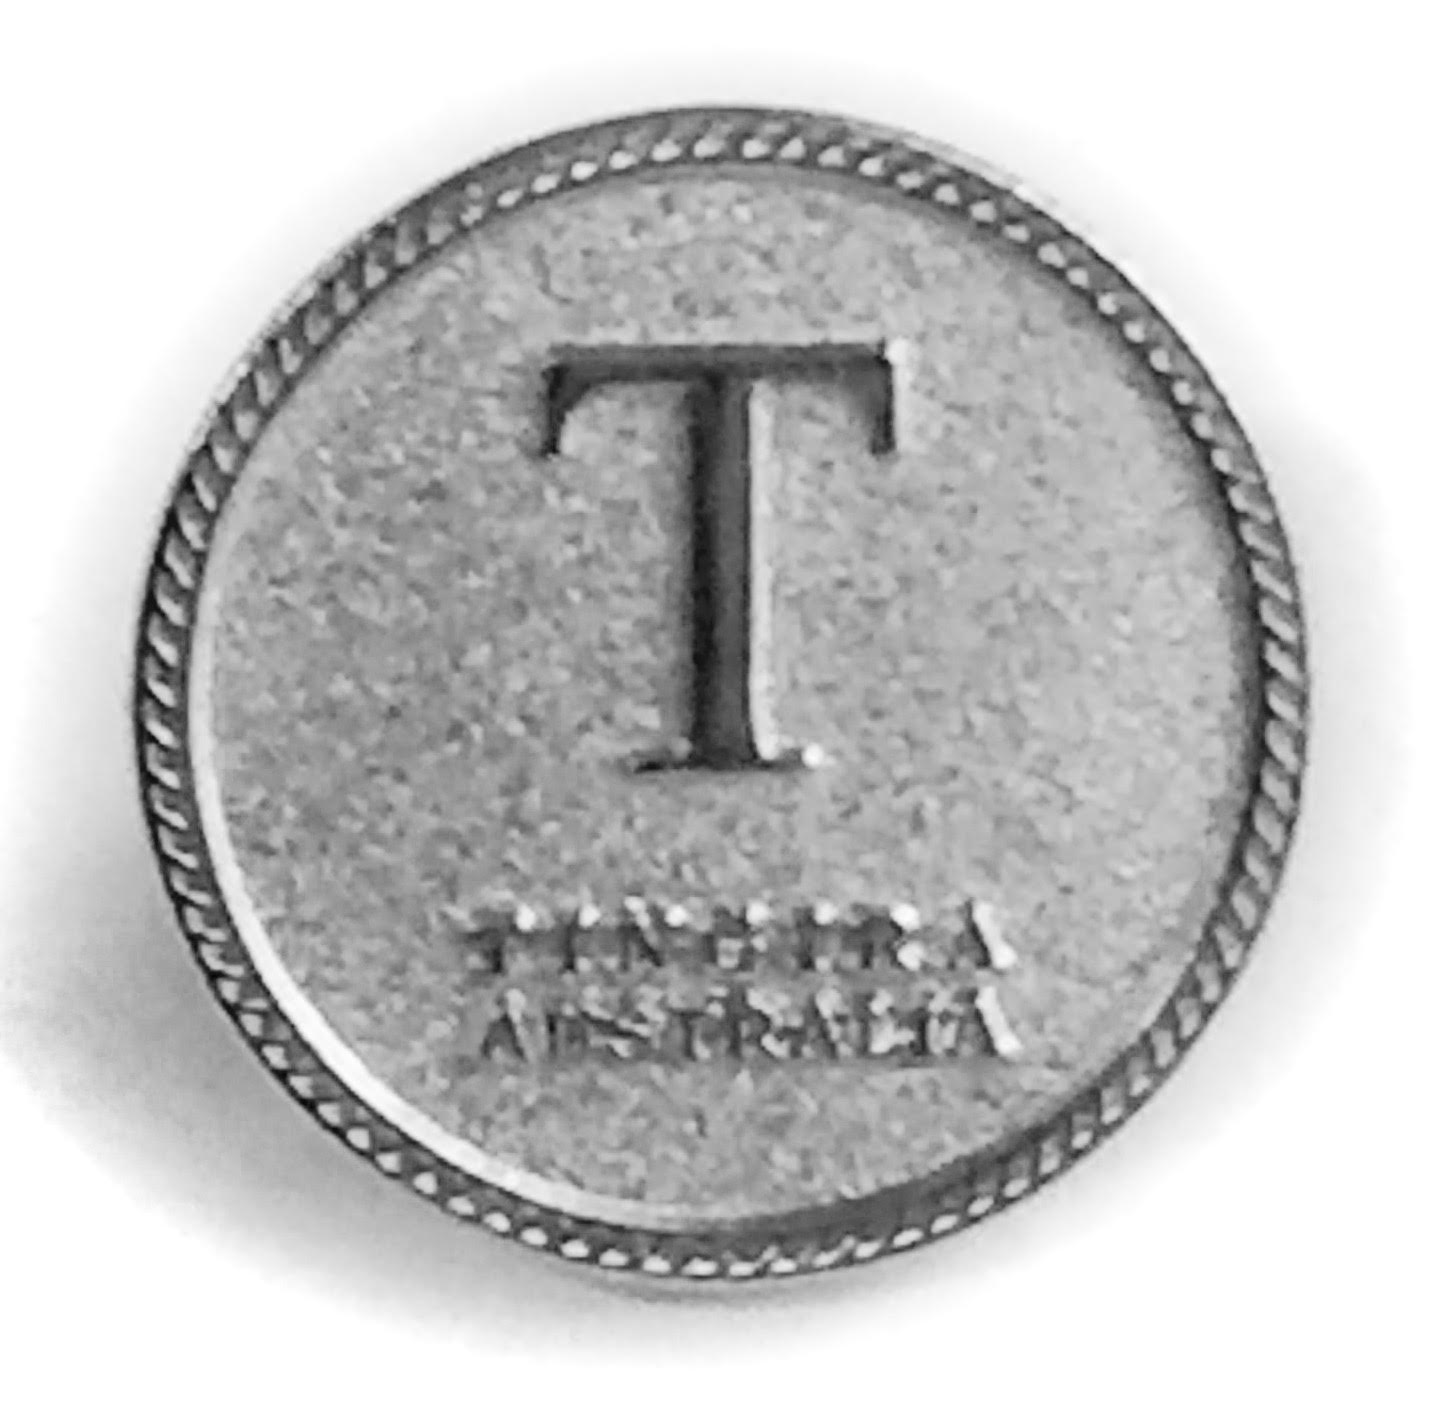 Tingira <strong>LIFE</strong> Foundation Membership Subscription